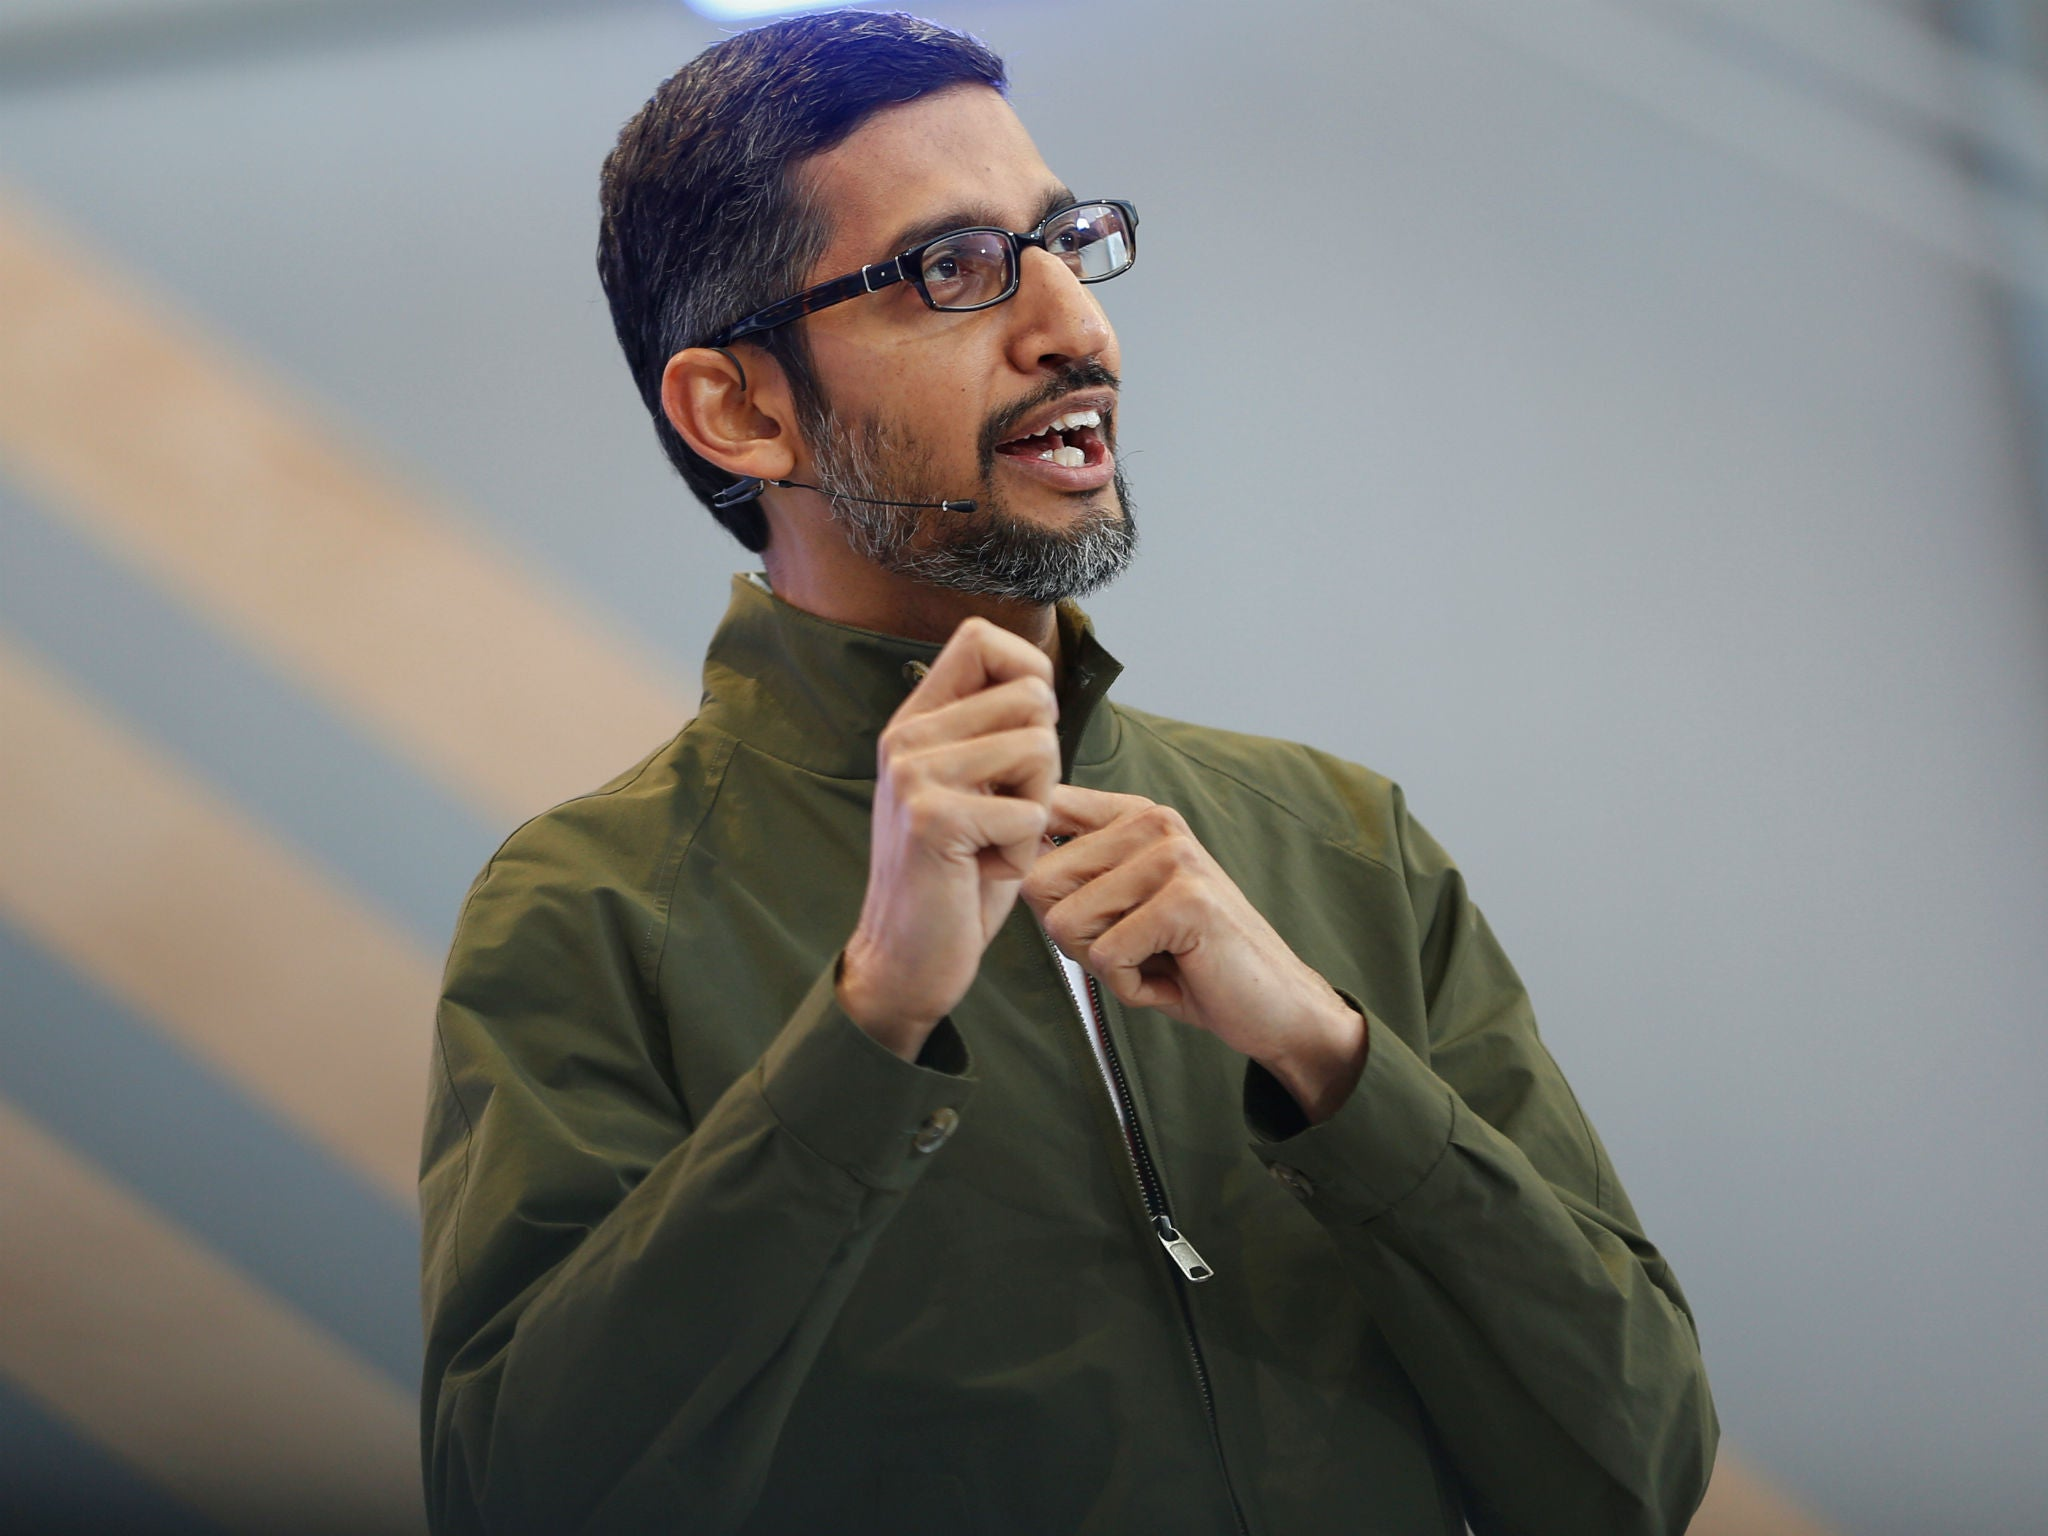 Google pledges to not work on weapons after Project Maven backlash